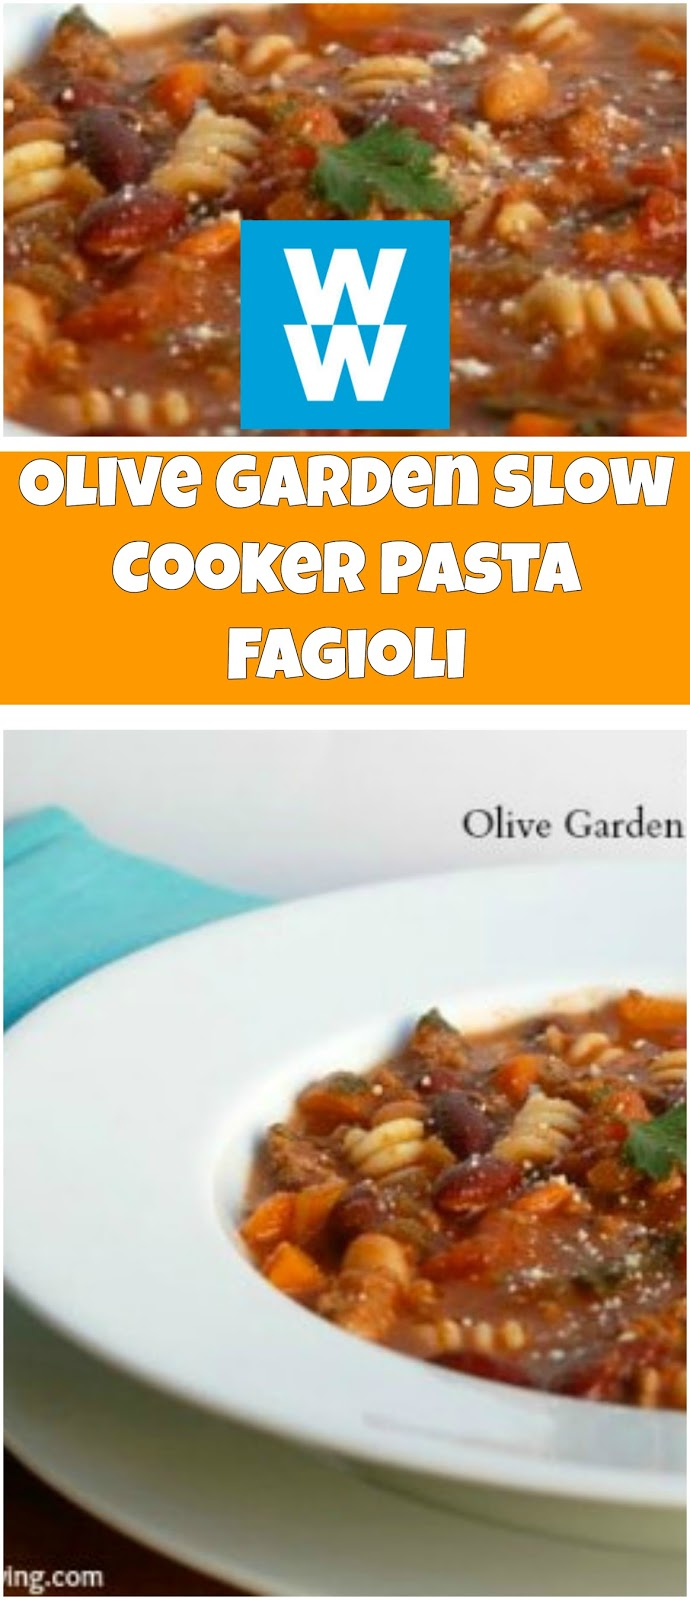 Olive Garden Slow Cooker Pasta Fagioli Recipe 5 Smart Points Weight Watchers Recipes